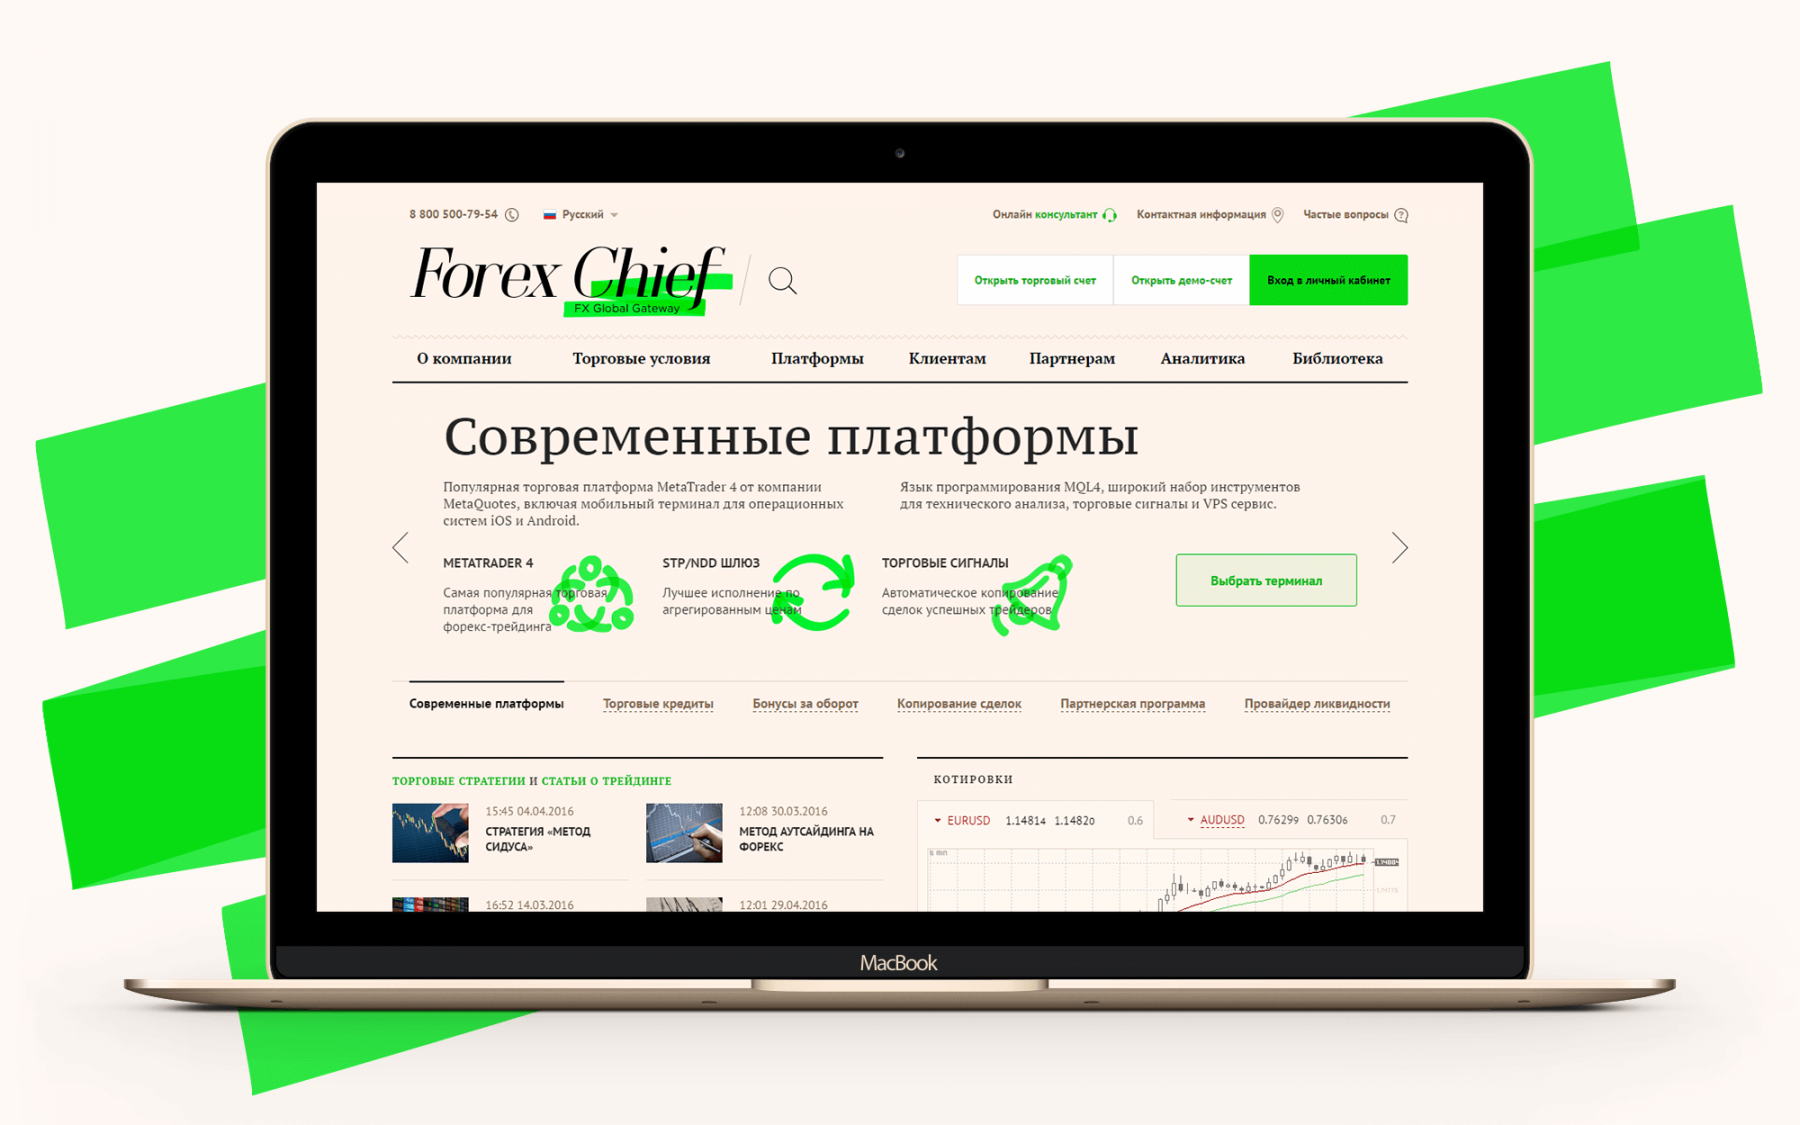 ForexChief-1